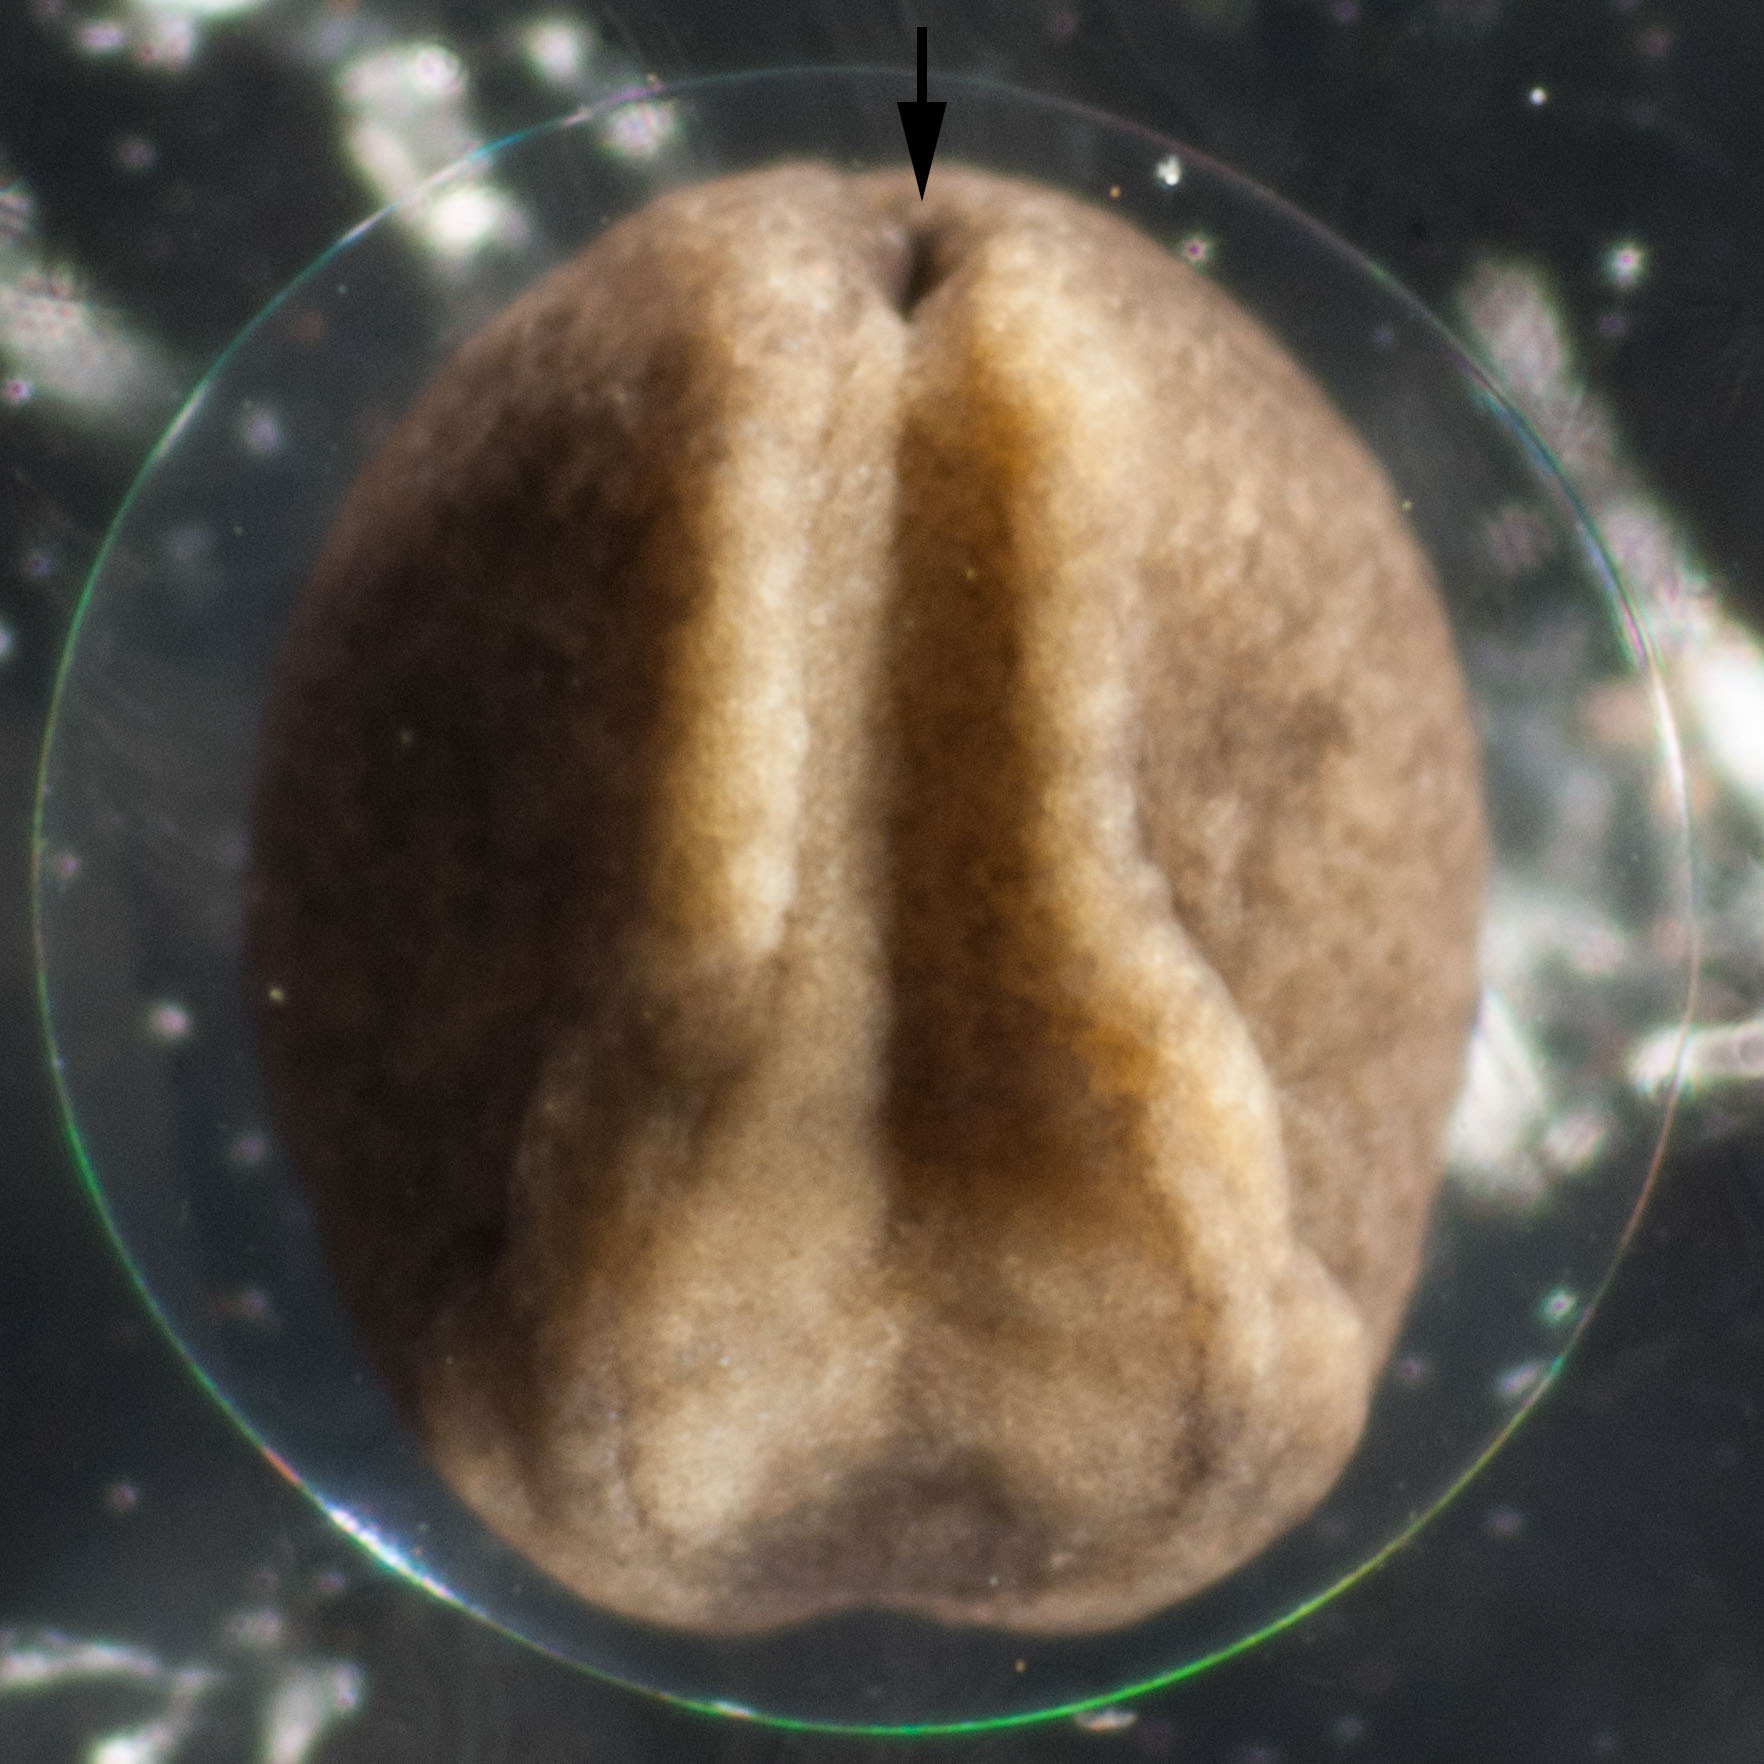 Image 10 . The folds are more prominent and are approaching each other in the rear end of the embryo. The arrow points to a hole which becomes the anus.